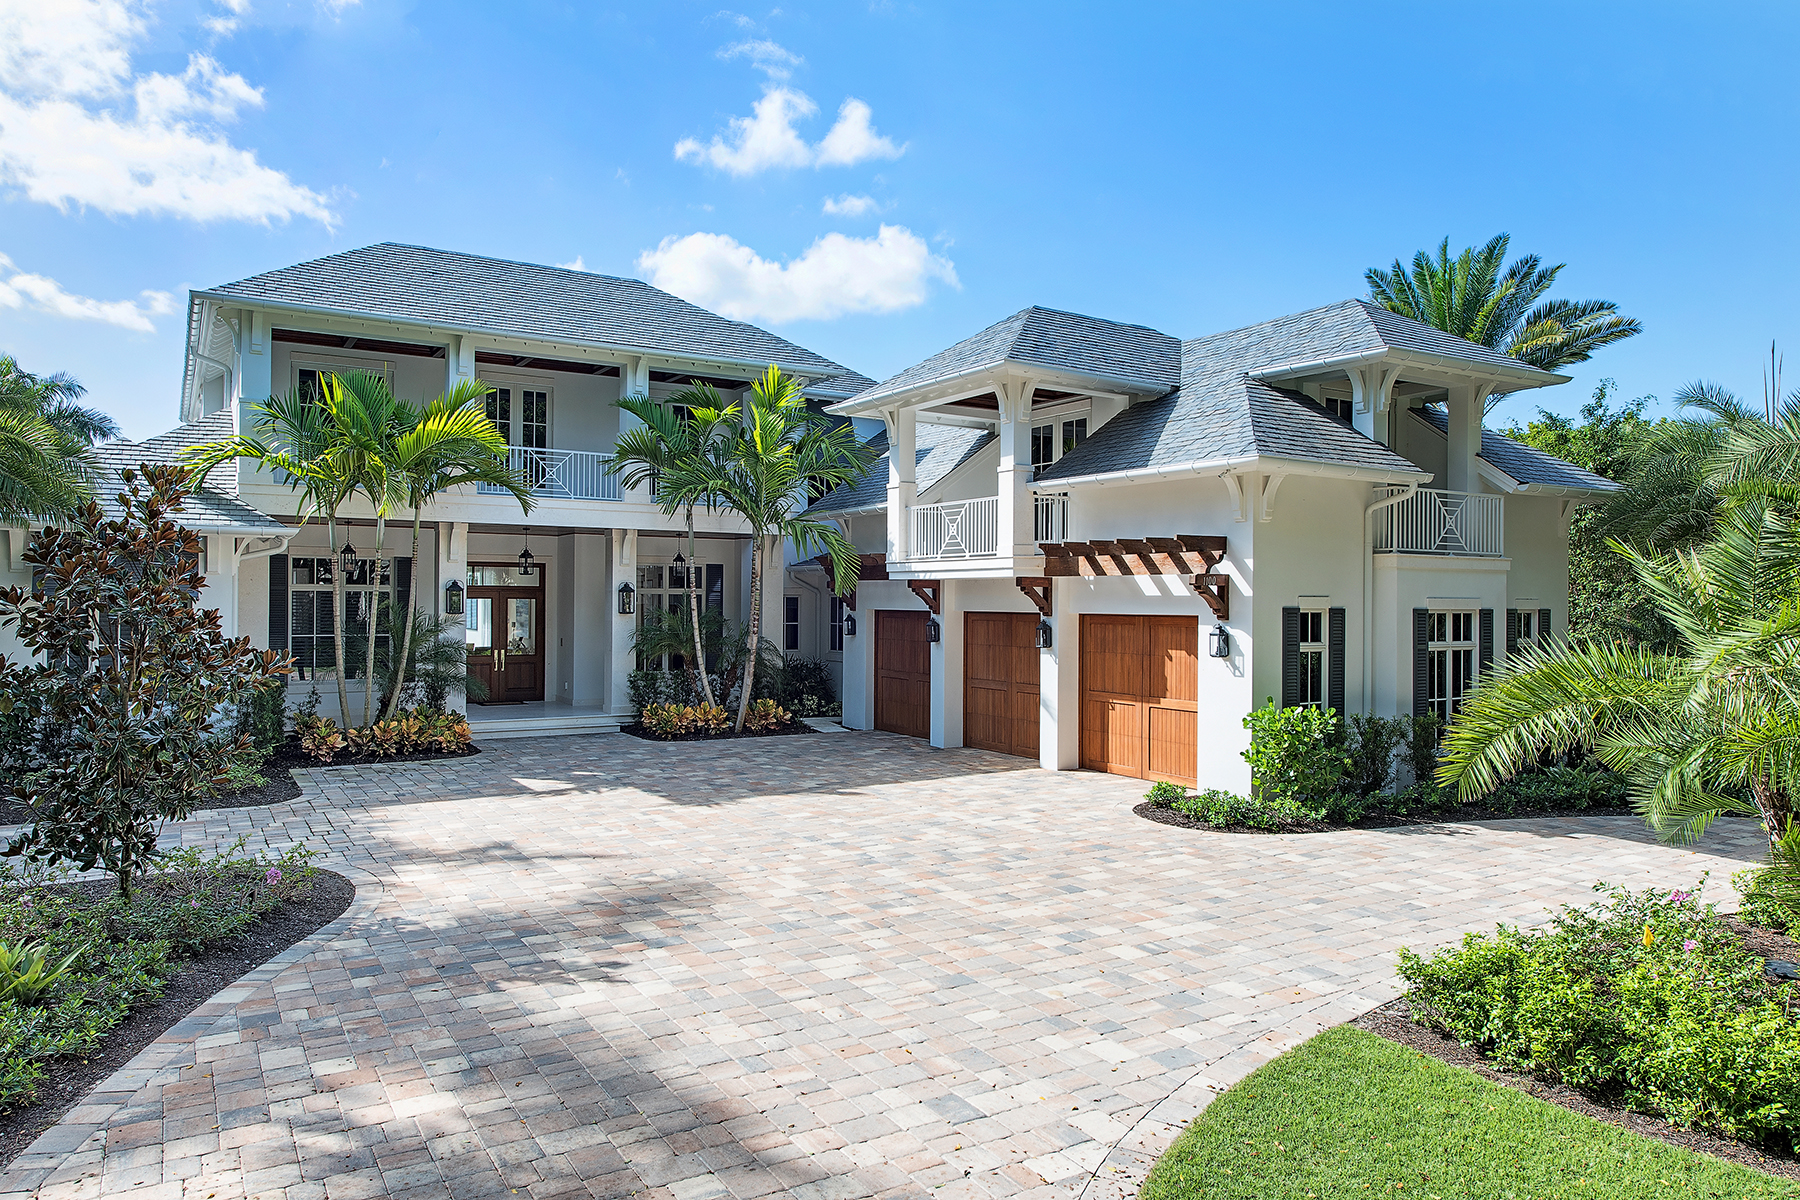 Maison unifamiliale pour l Vente à PORT ROYAL 1100 Galleon Dr, Port Royal, Naples, Florida, 34102 États-Unis